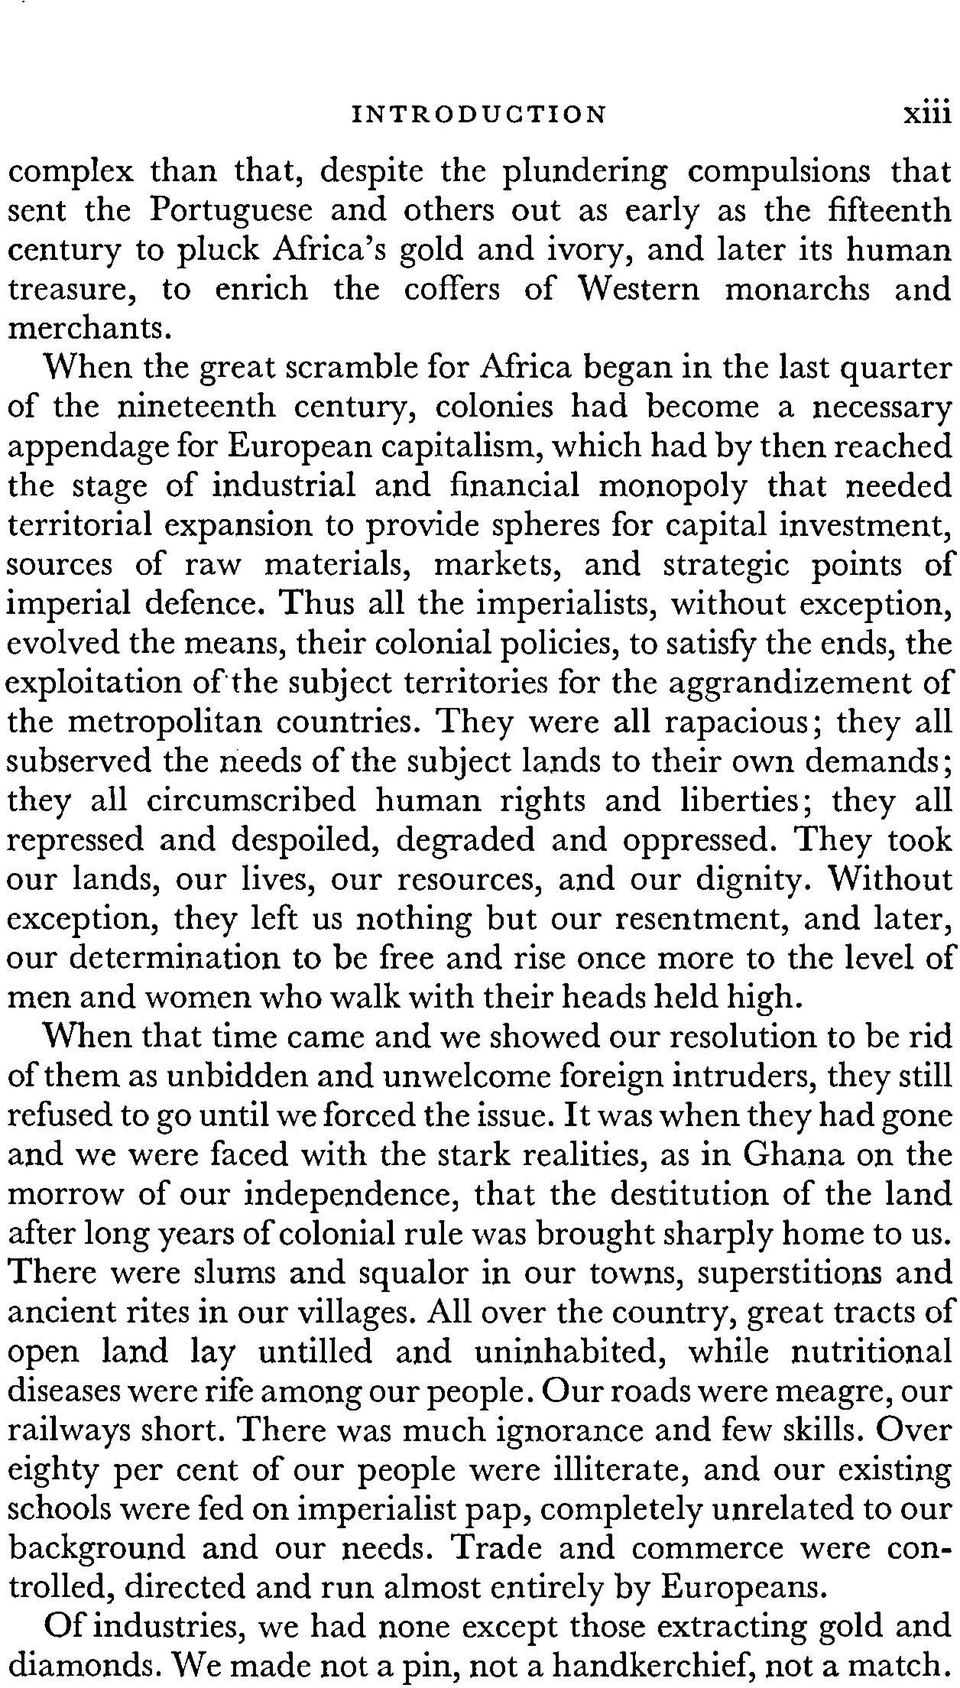 W hen the great scramble for Africa began in the last quarter of the nineteenth century, colonies had become a necessary appendage for European capitalism, which had by then reached the stage of